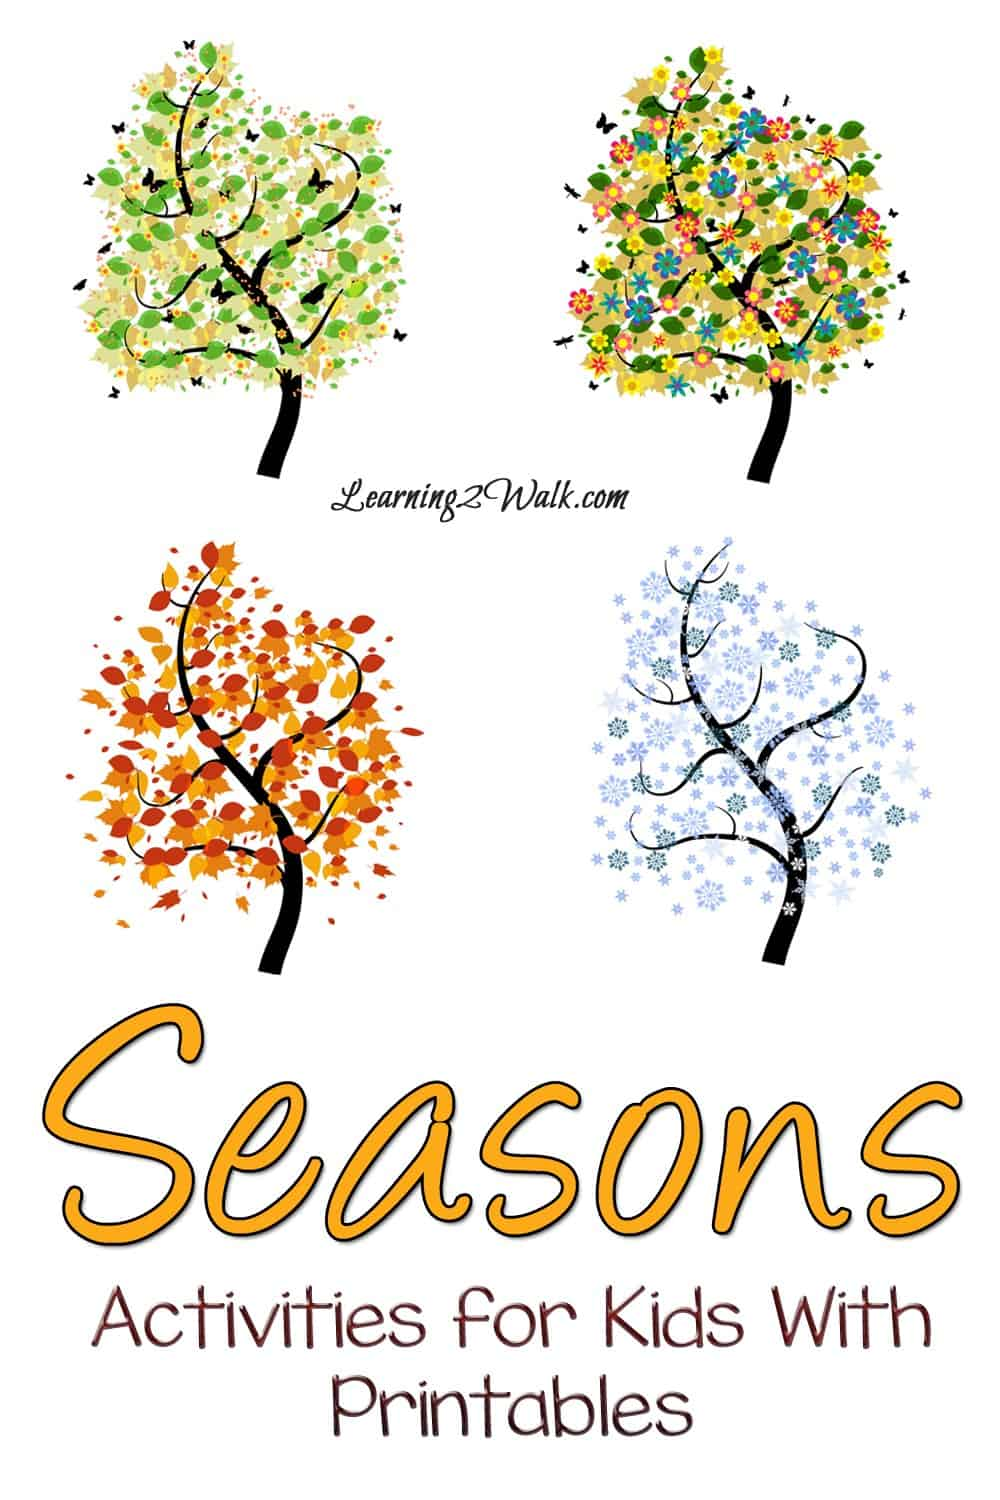 Don't you just love the different seasons and all the season activities for kids with printables that can be done? Why not try a few of these kid activities?